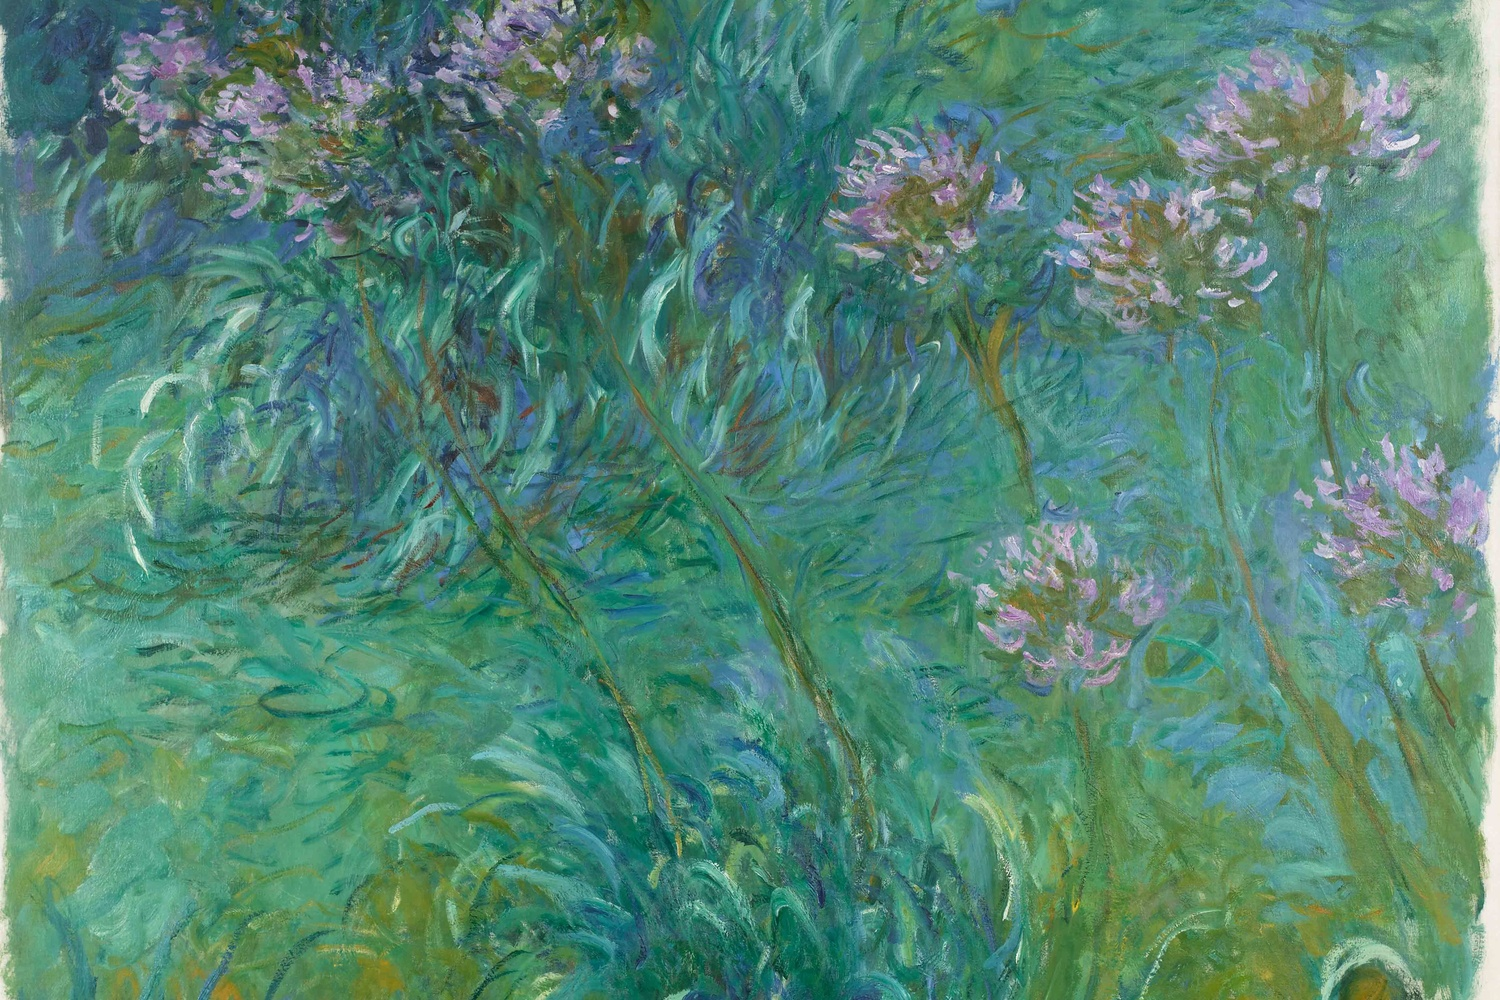 "Claude Monet. Agapanthus. 1914–26. Oil on canvas, 6' 6"" x 70 1/4"" (198.2 x 178.4 cm). Gift of Sylvia Slifka in memory of Joseph Slifka"